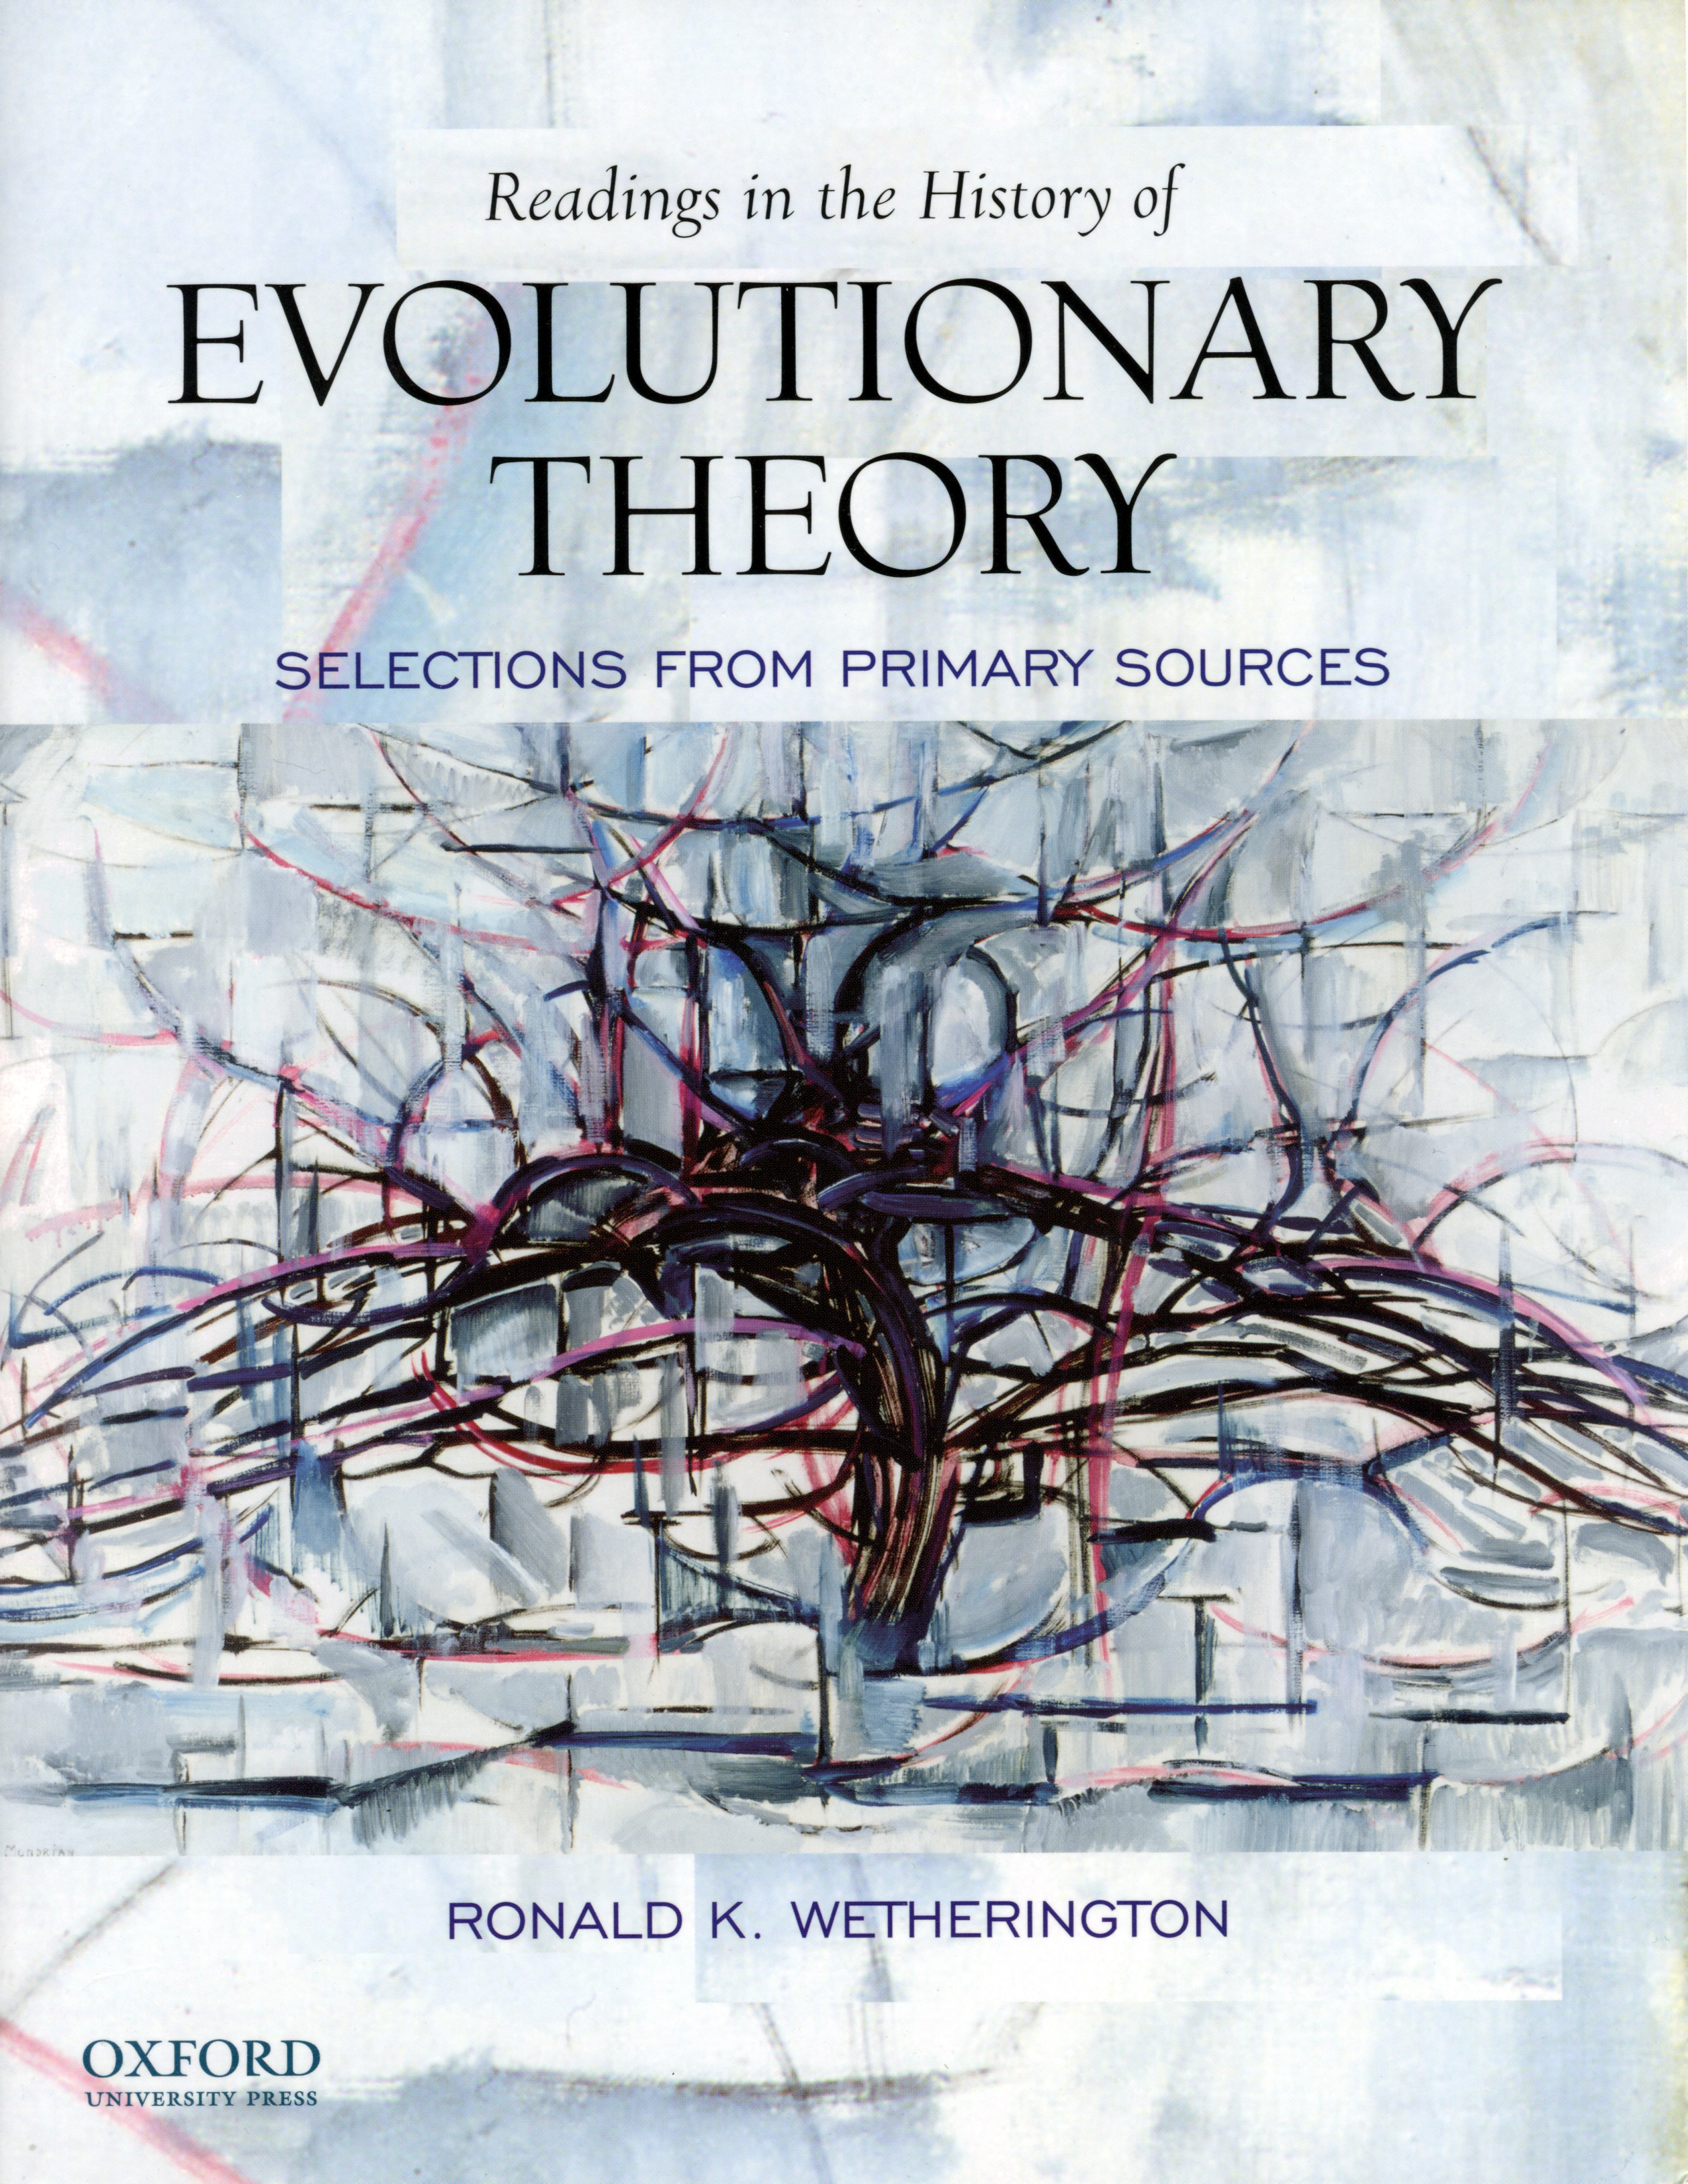 Readings in the History of Evolutionary Theory by Ronald K. Wetherington